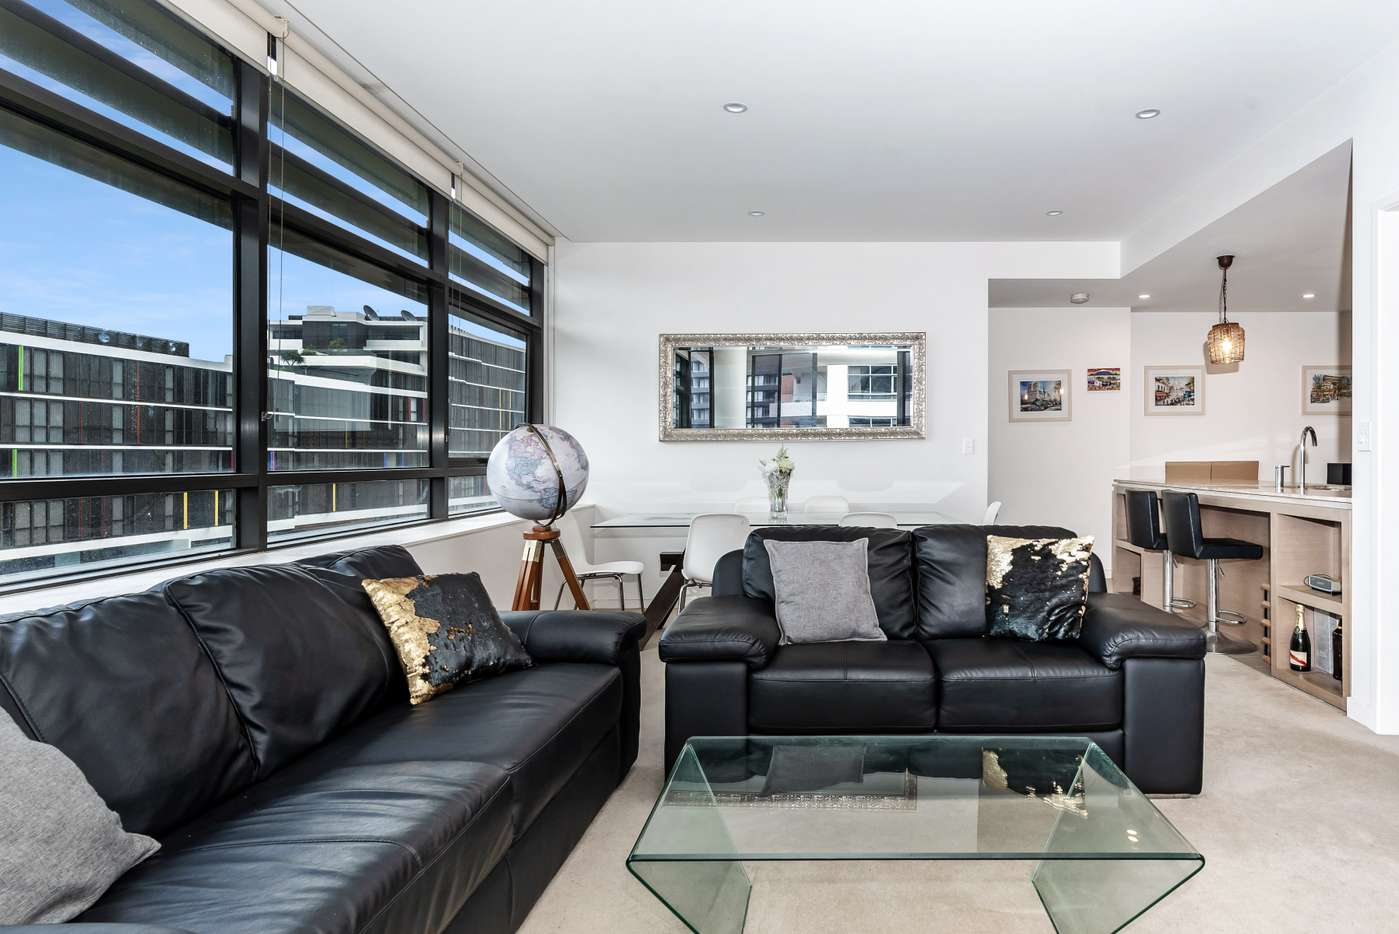 Main view of Homely apartment listing, 401/23 Archibald Avenue, Waterloo, NSW 2017